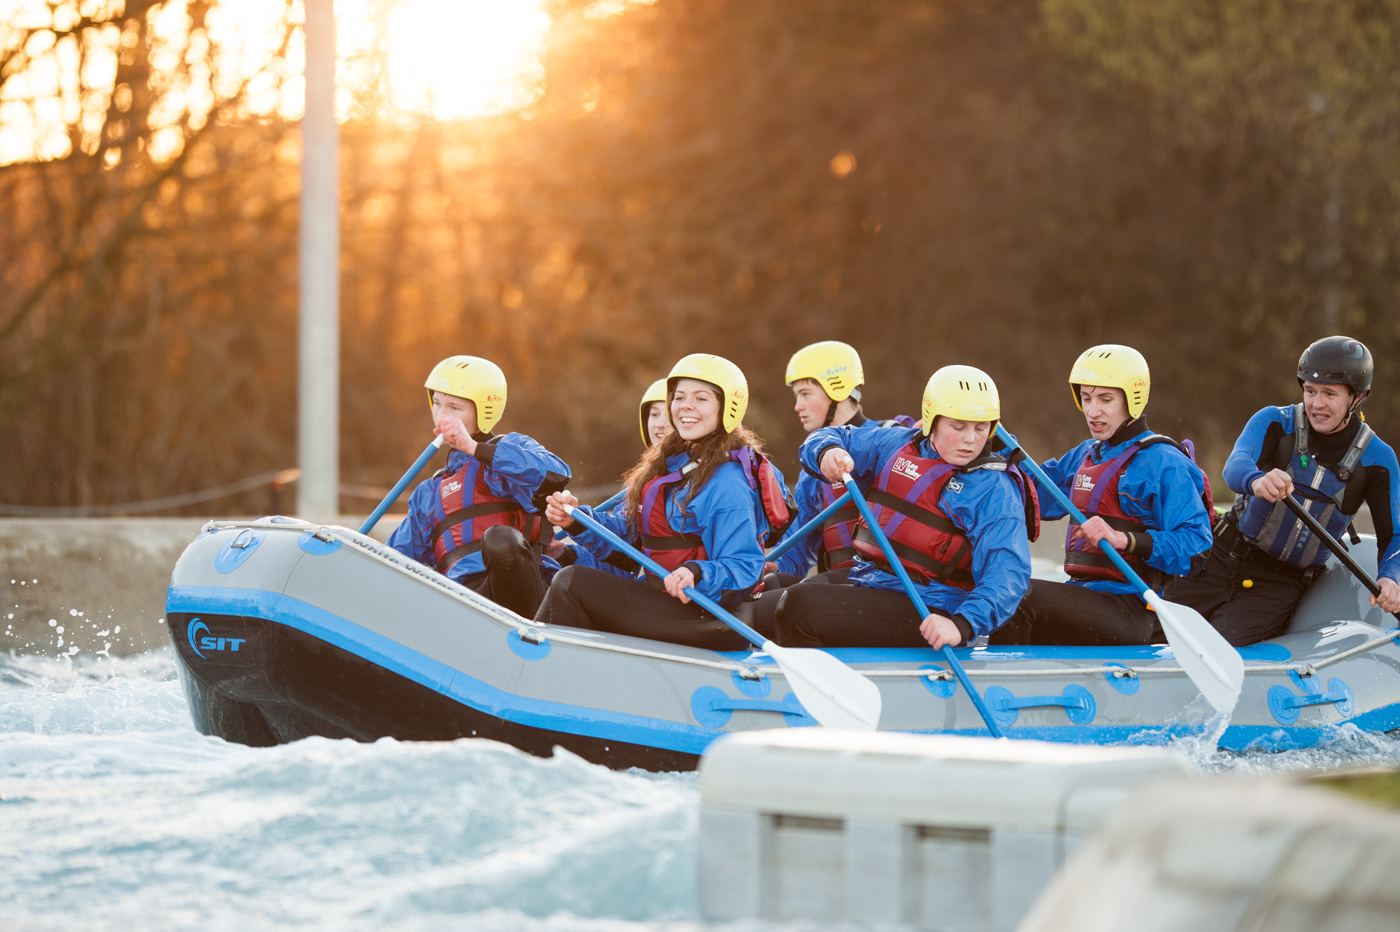 White Water Rafting, at the Olympic 2012 Lee Valley Centre, is a great hit and brilliant fun to shoot...